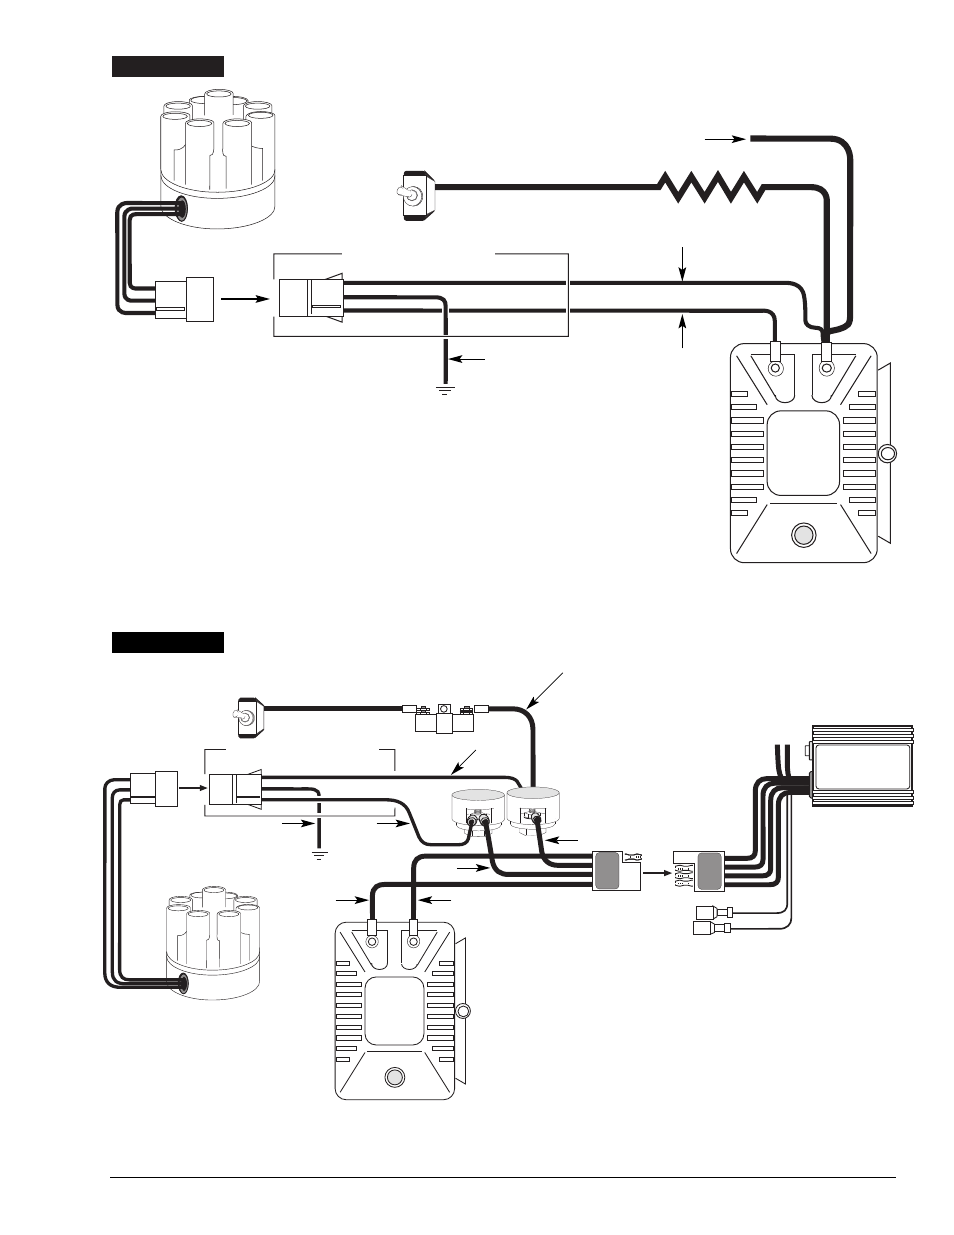 Ignition Coil Distributor Wiring Diagram Engine Scheme For Your Volvo Aq131 Mallory Unilite User Manualcoil Manual Page